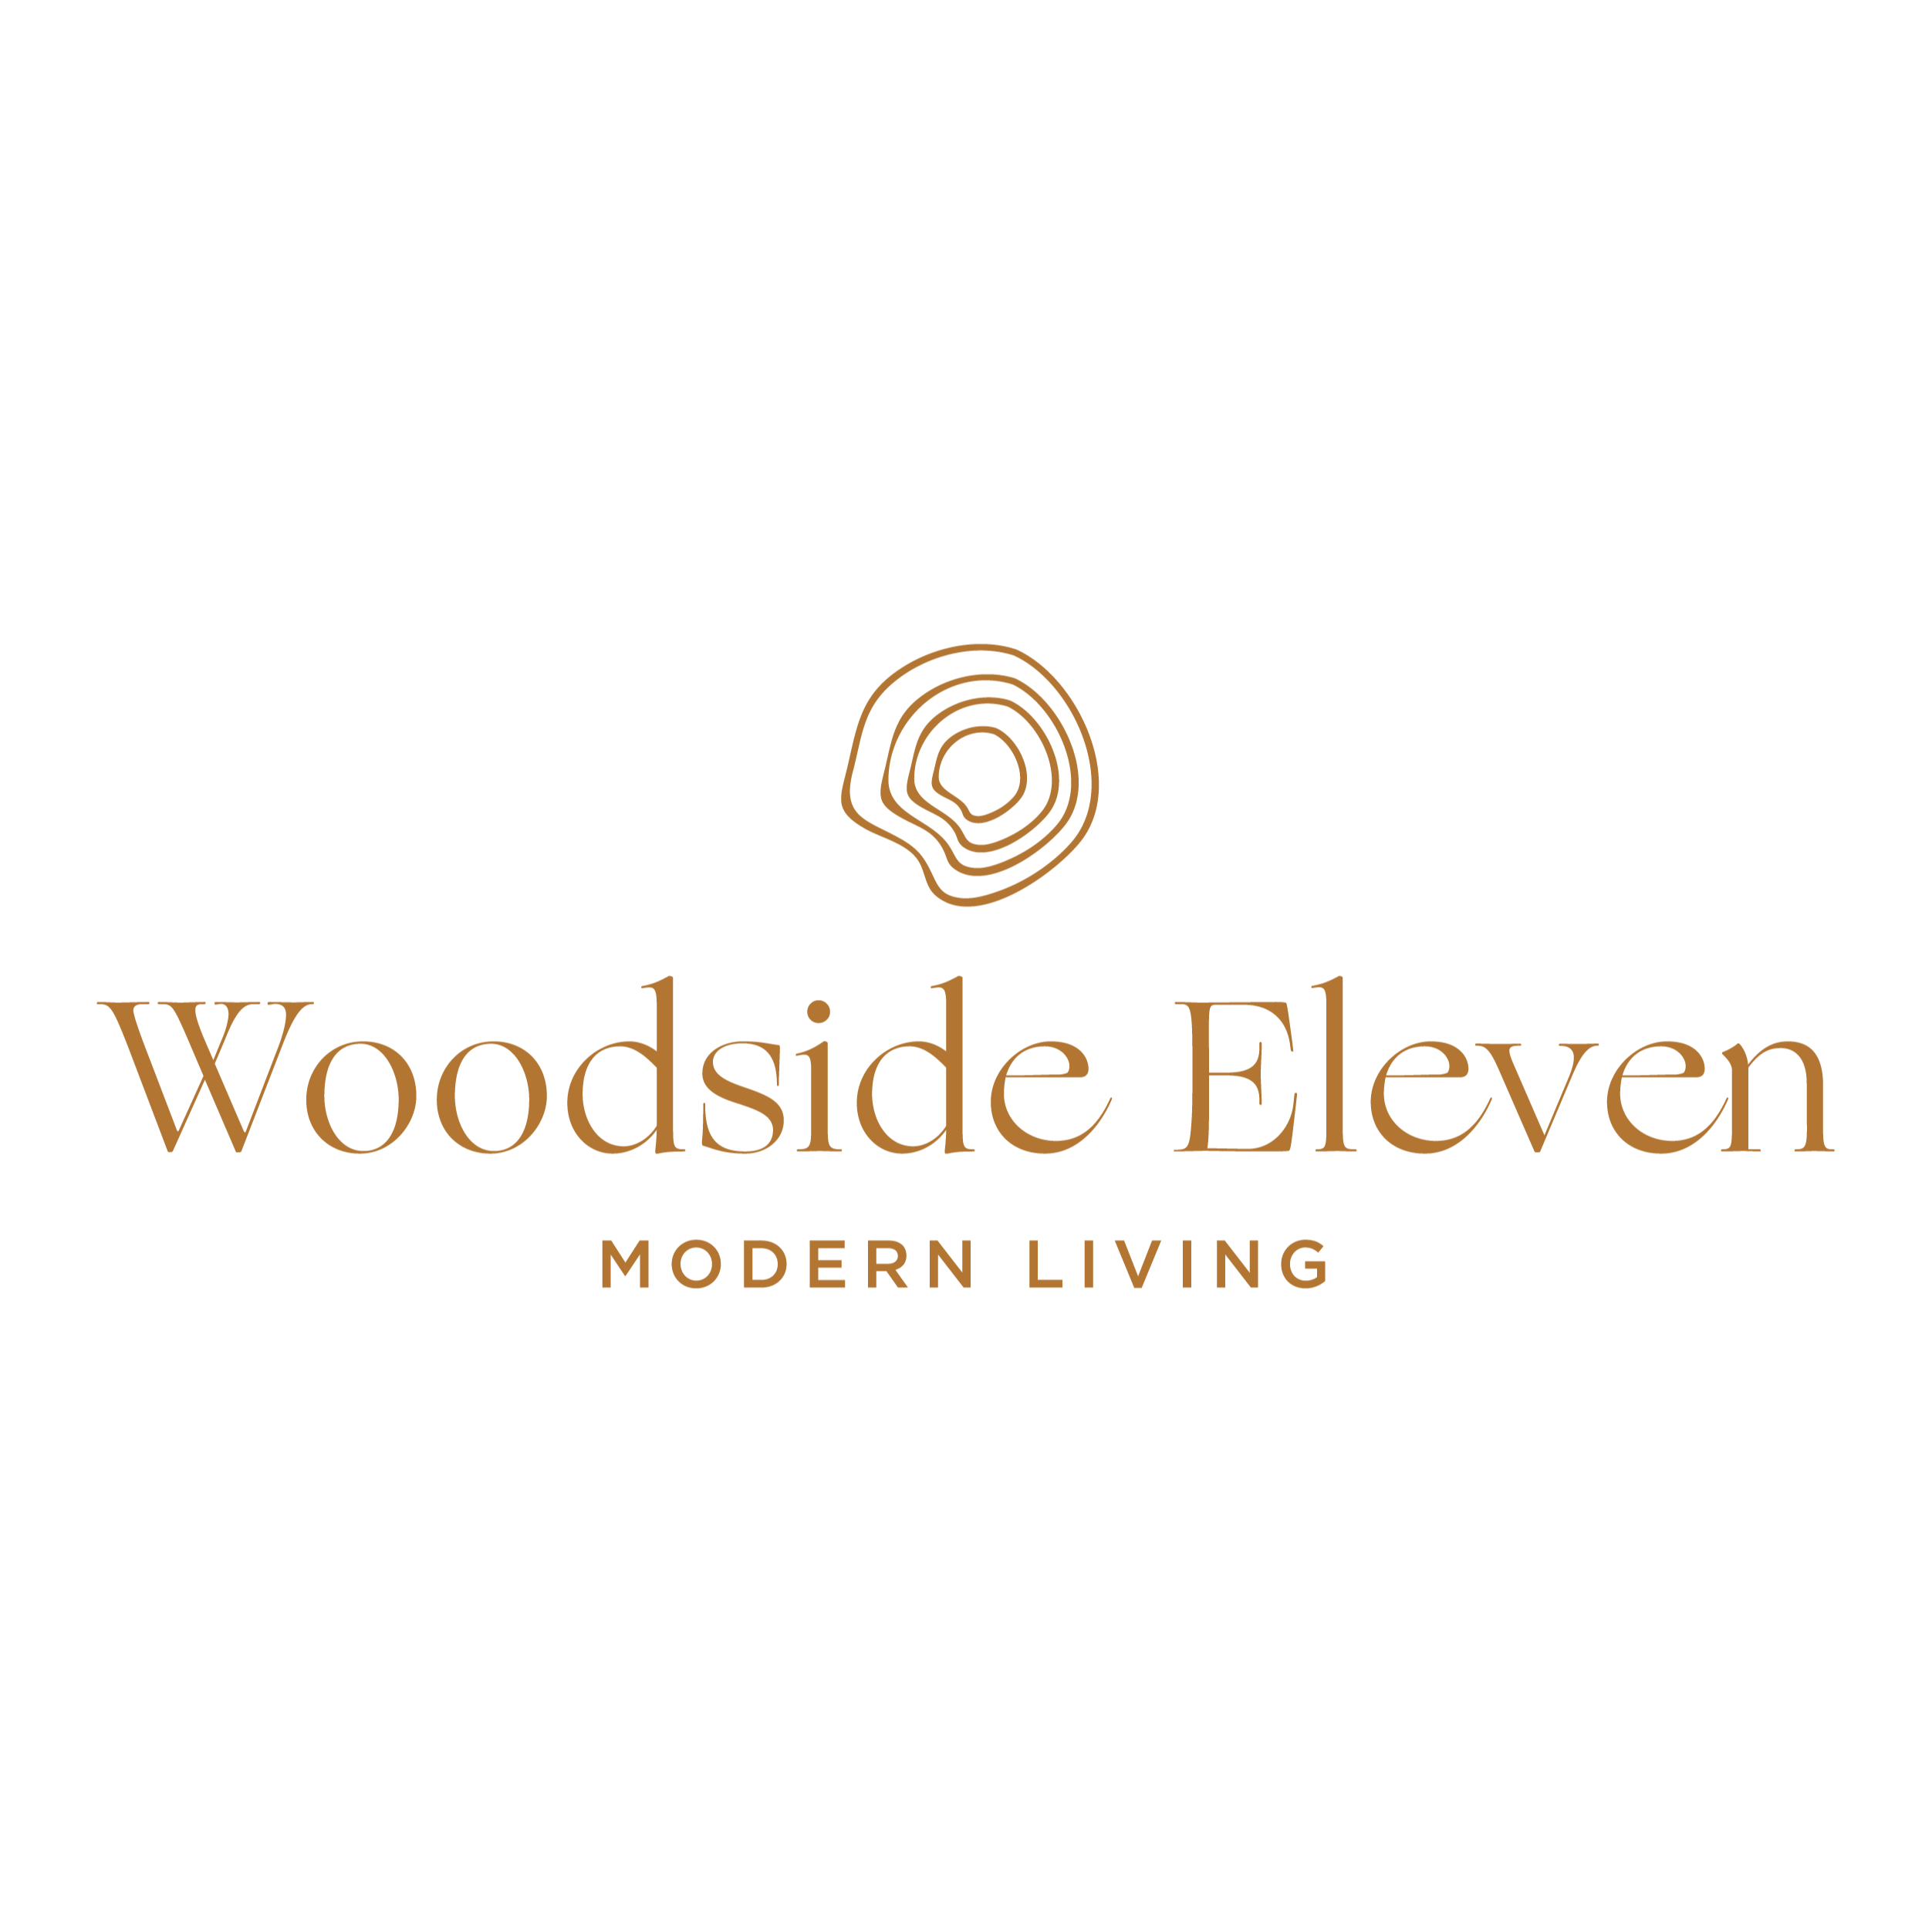 Woodside 11 | Financial Advisor in Greenville,South Carolina